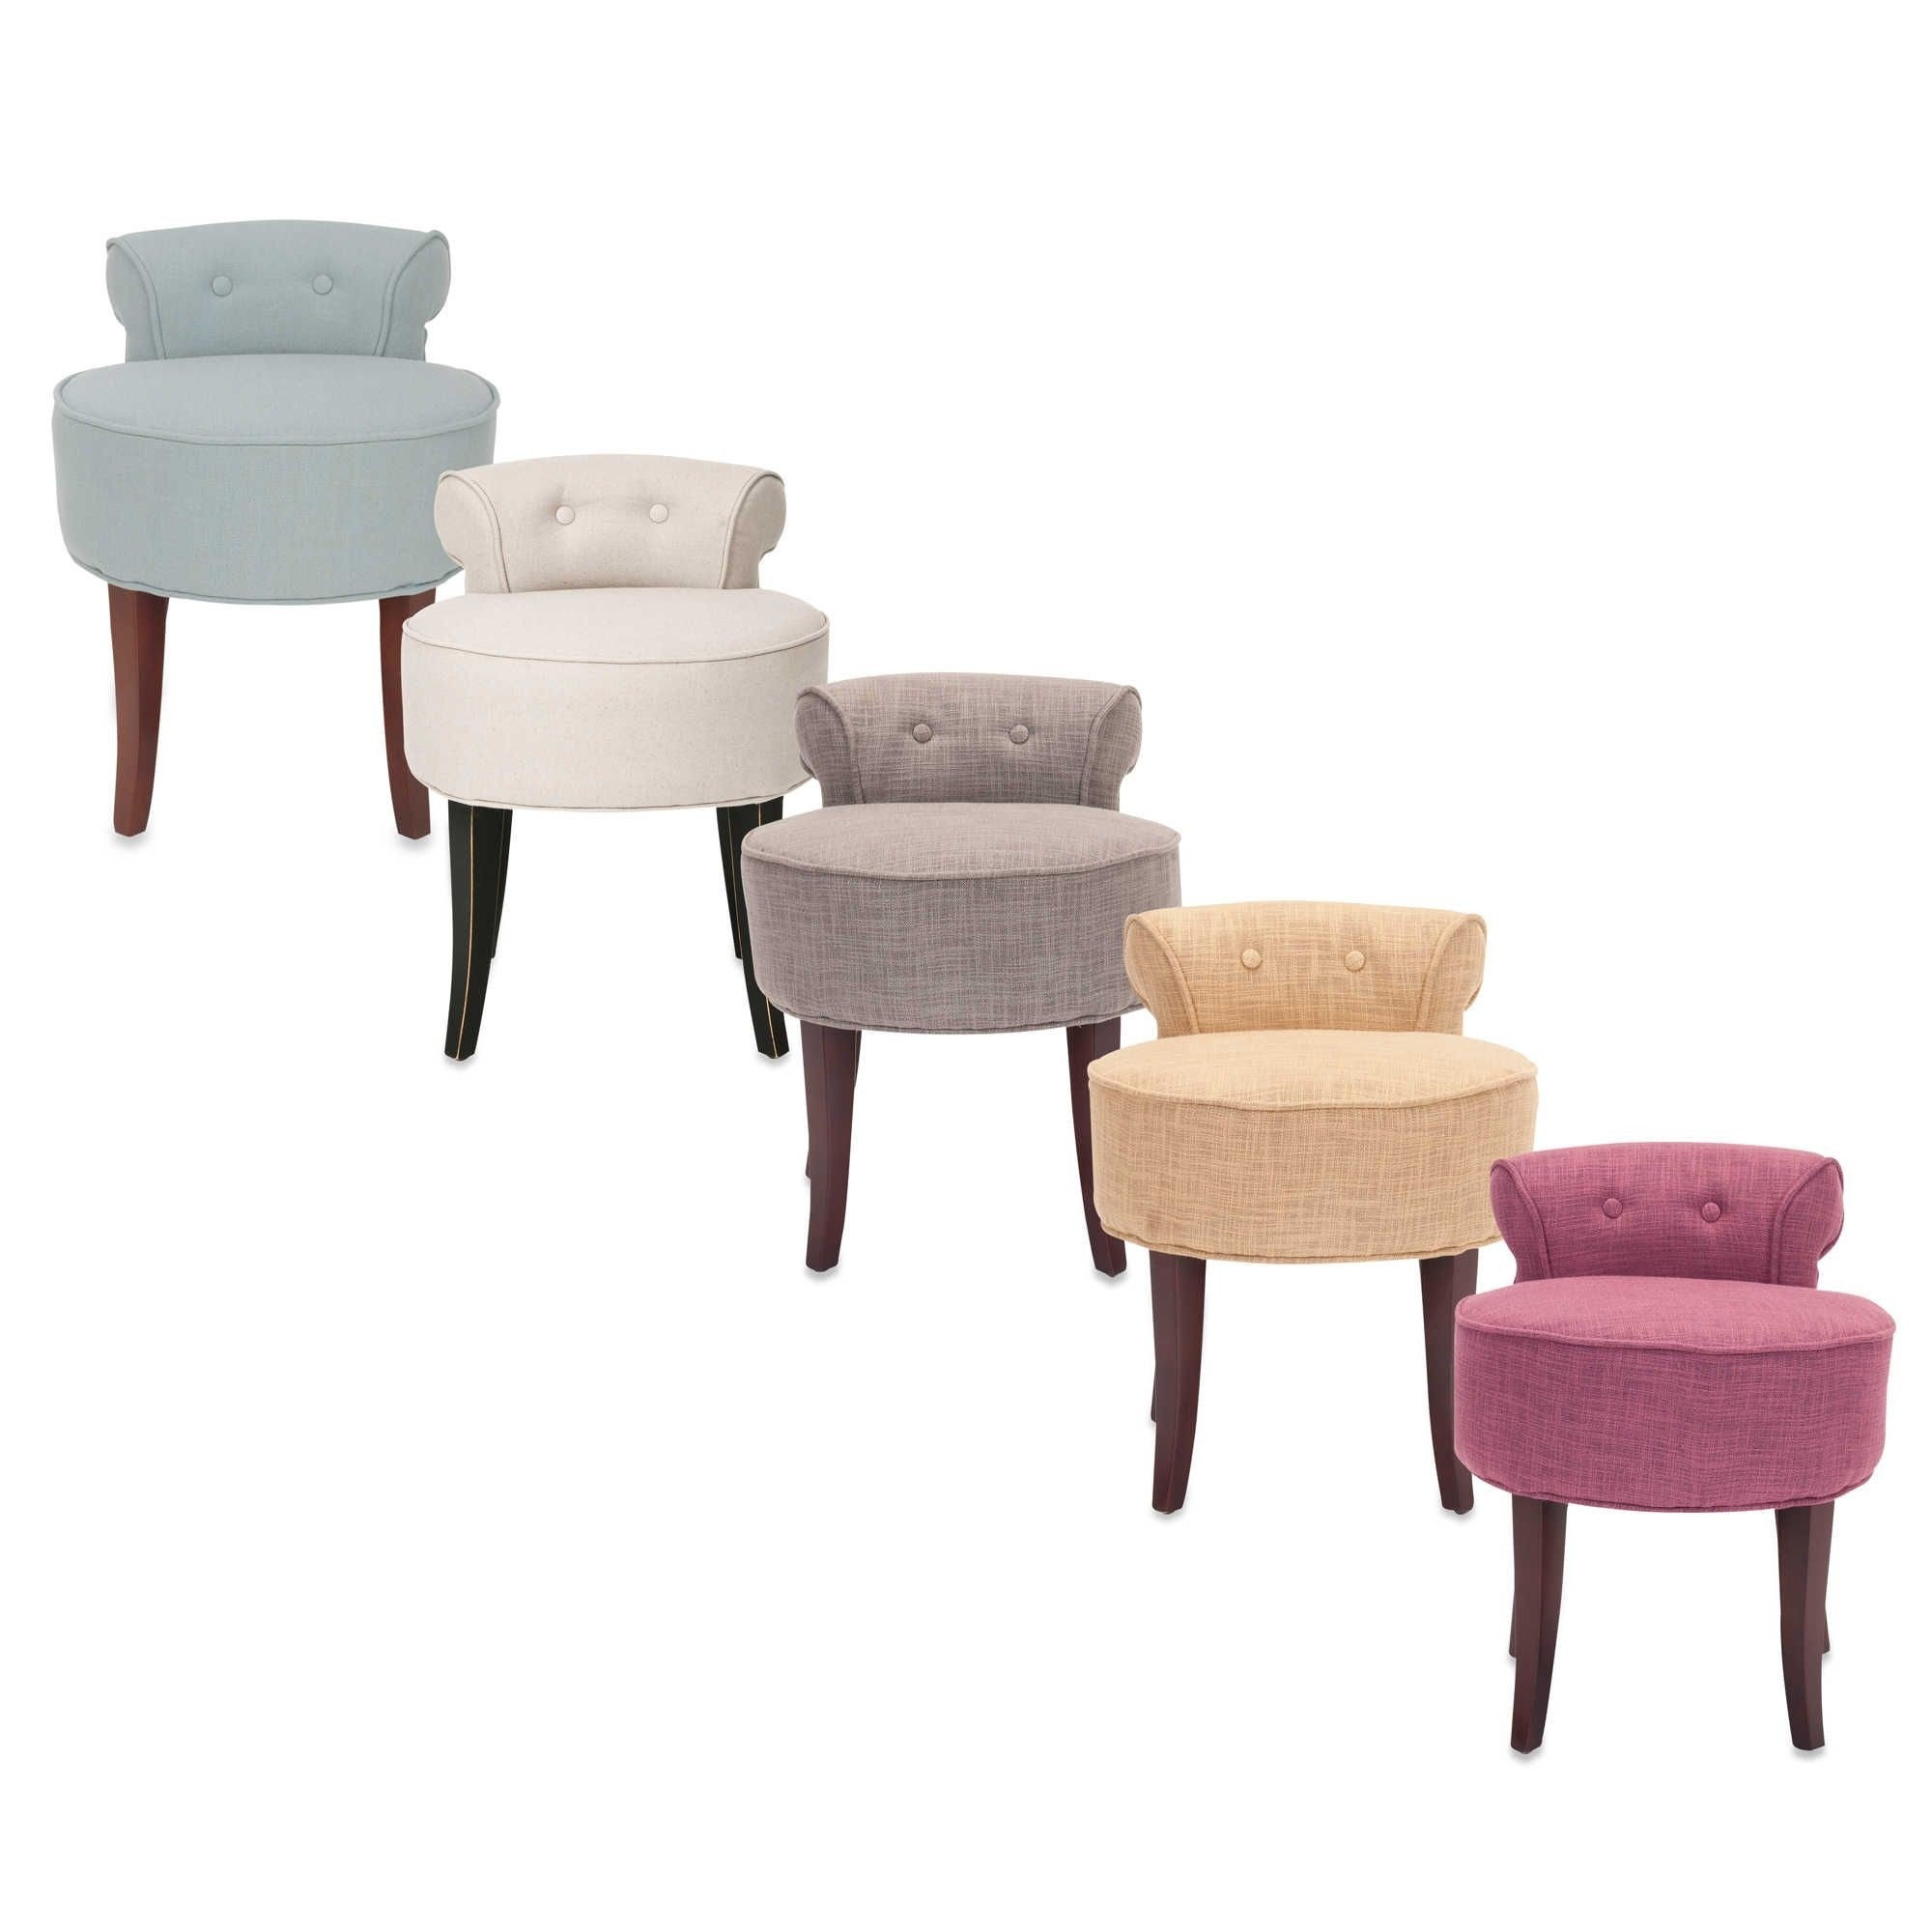 Bathroom Vanity Chairs And Stools Ideas On Foter